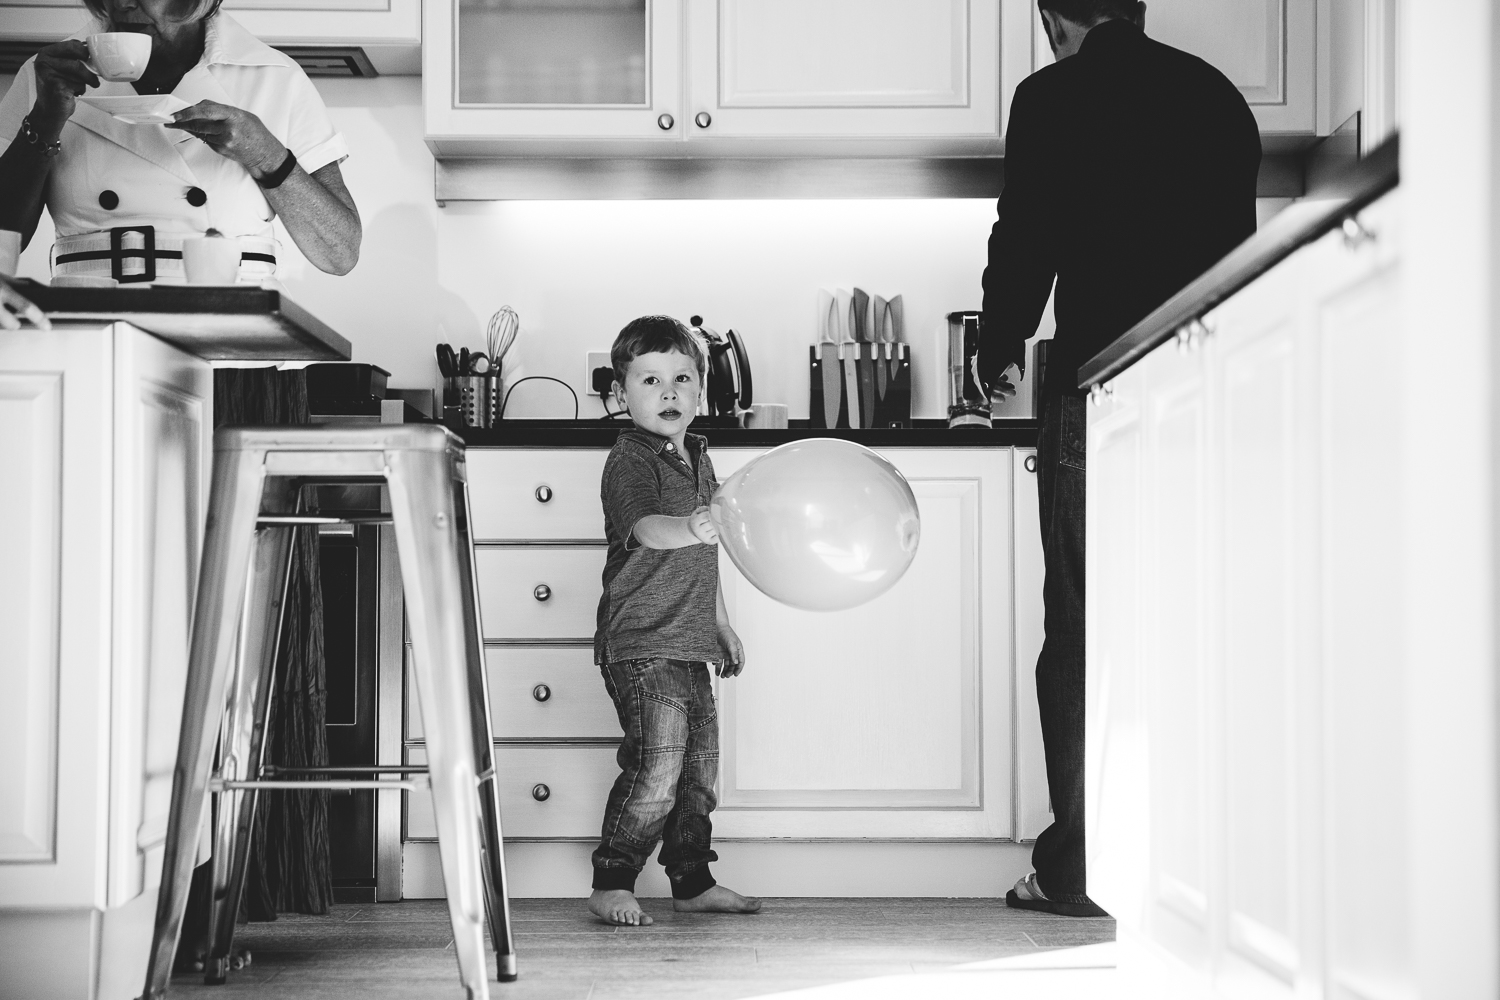 boy in kitchen with balloon photography hadley wood